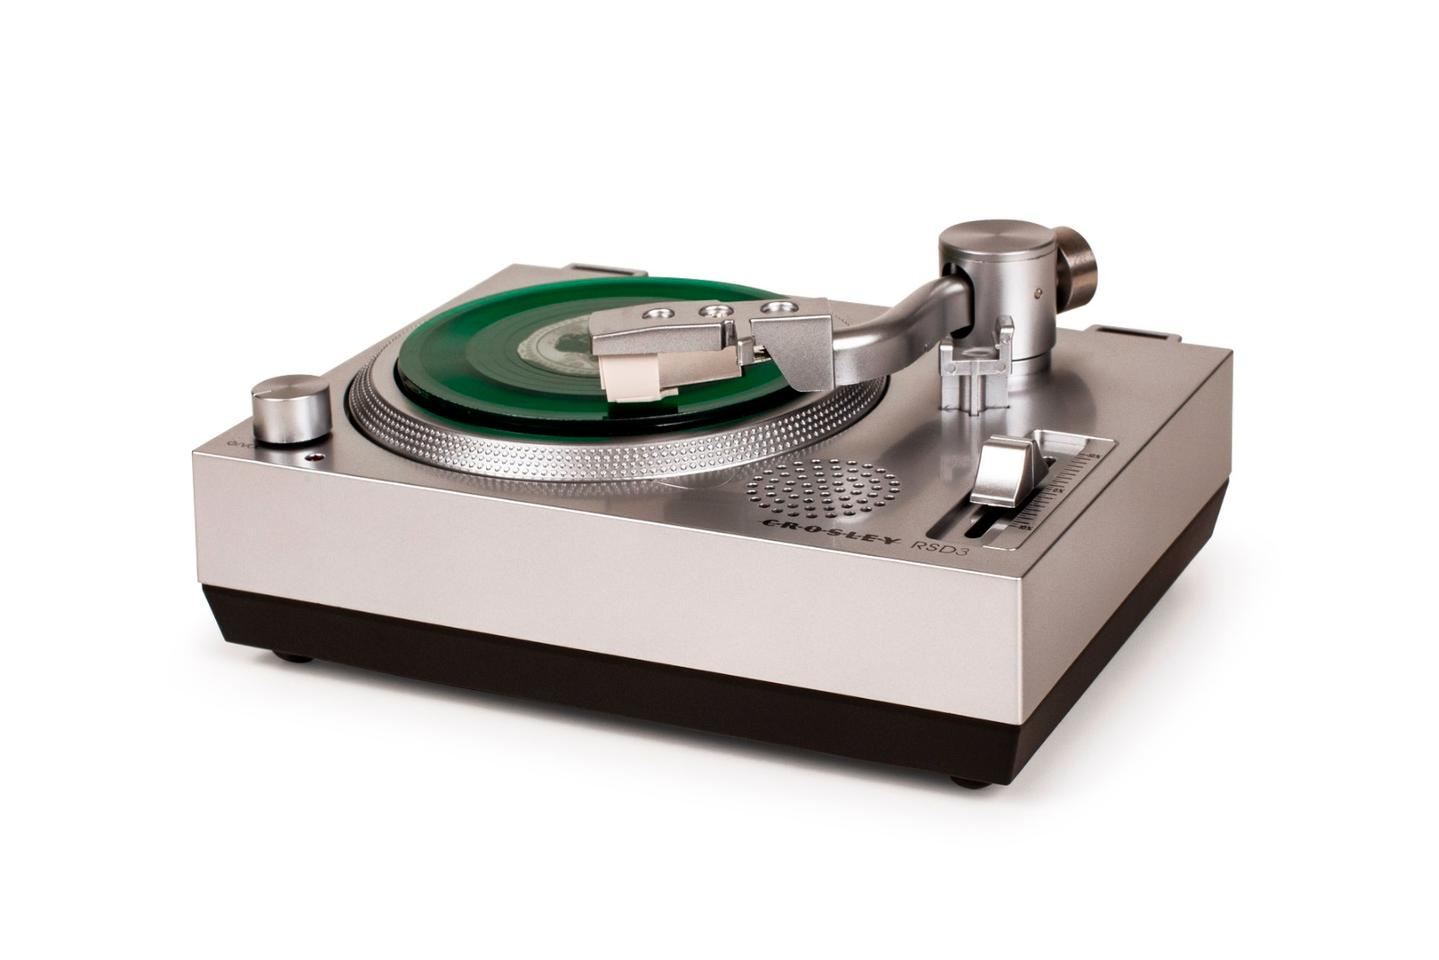 The RSD3 has the look of a TechnicsSL-1200, in miniature form